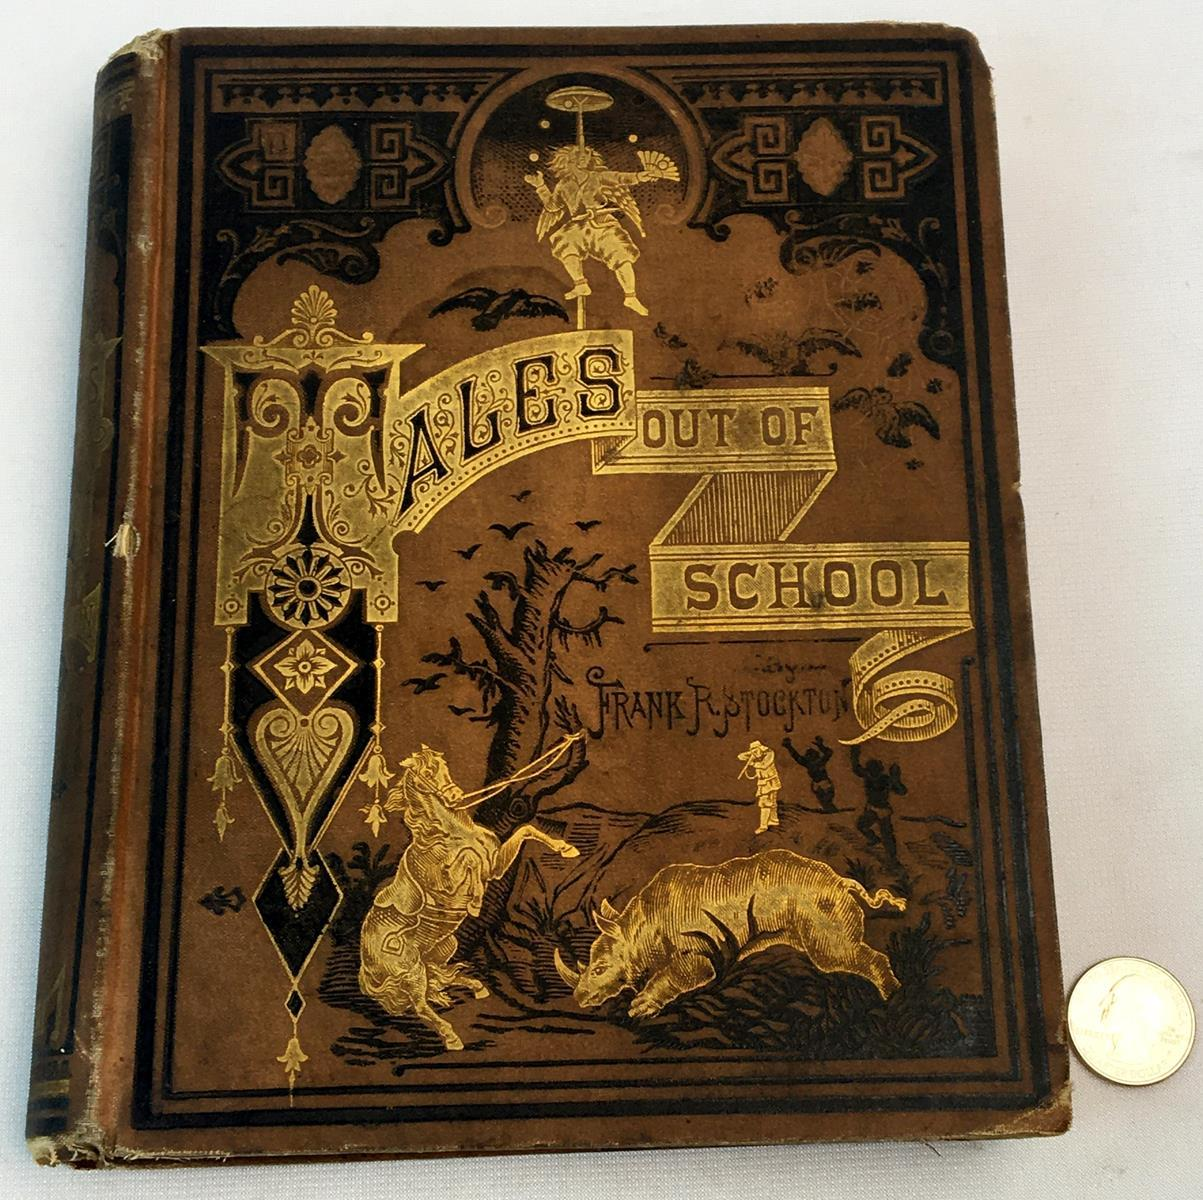 1876 Tales Out of School by Frank R. Stockton ILLUSTRATED